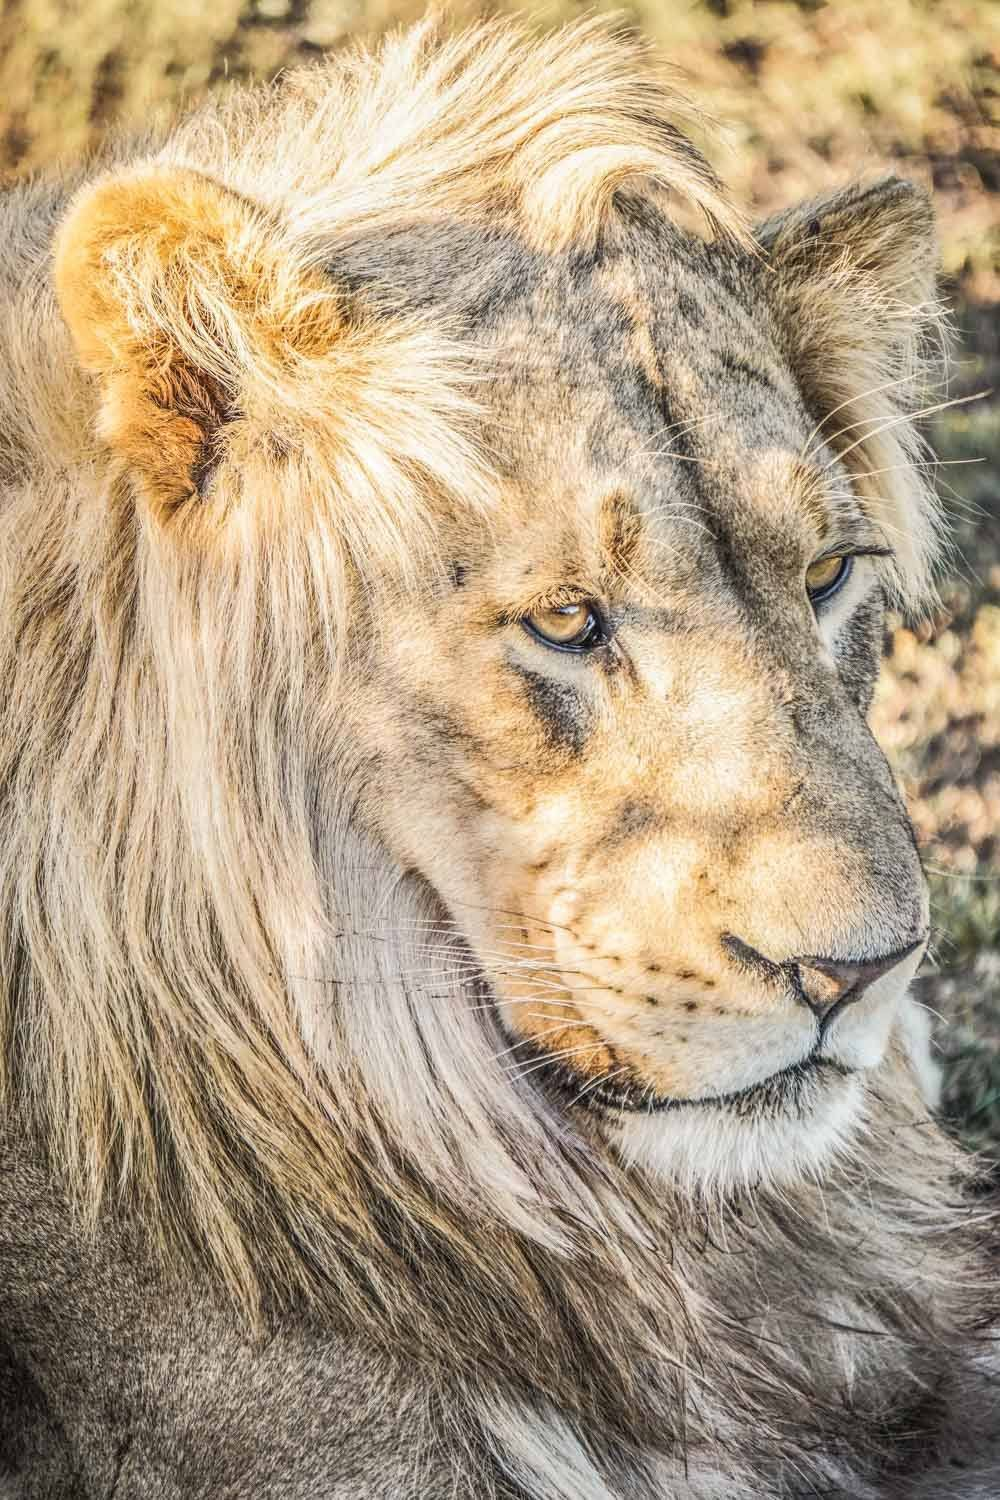 Male lion at Addo Elephant National Park